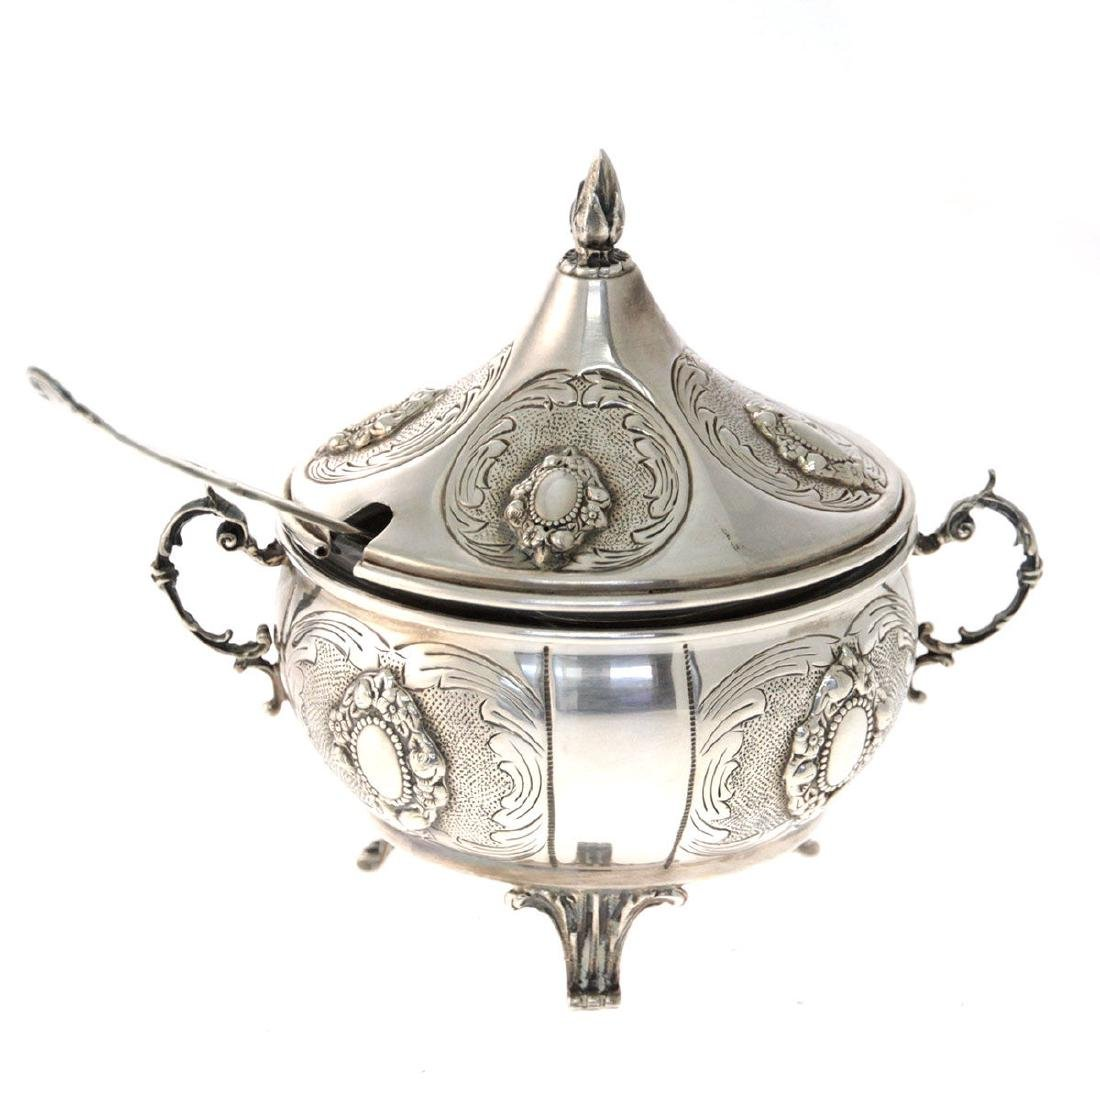 Hazorfim Sterling Silver Bowl with Cover and Spoon.